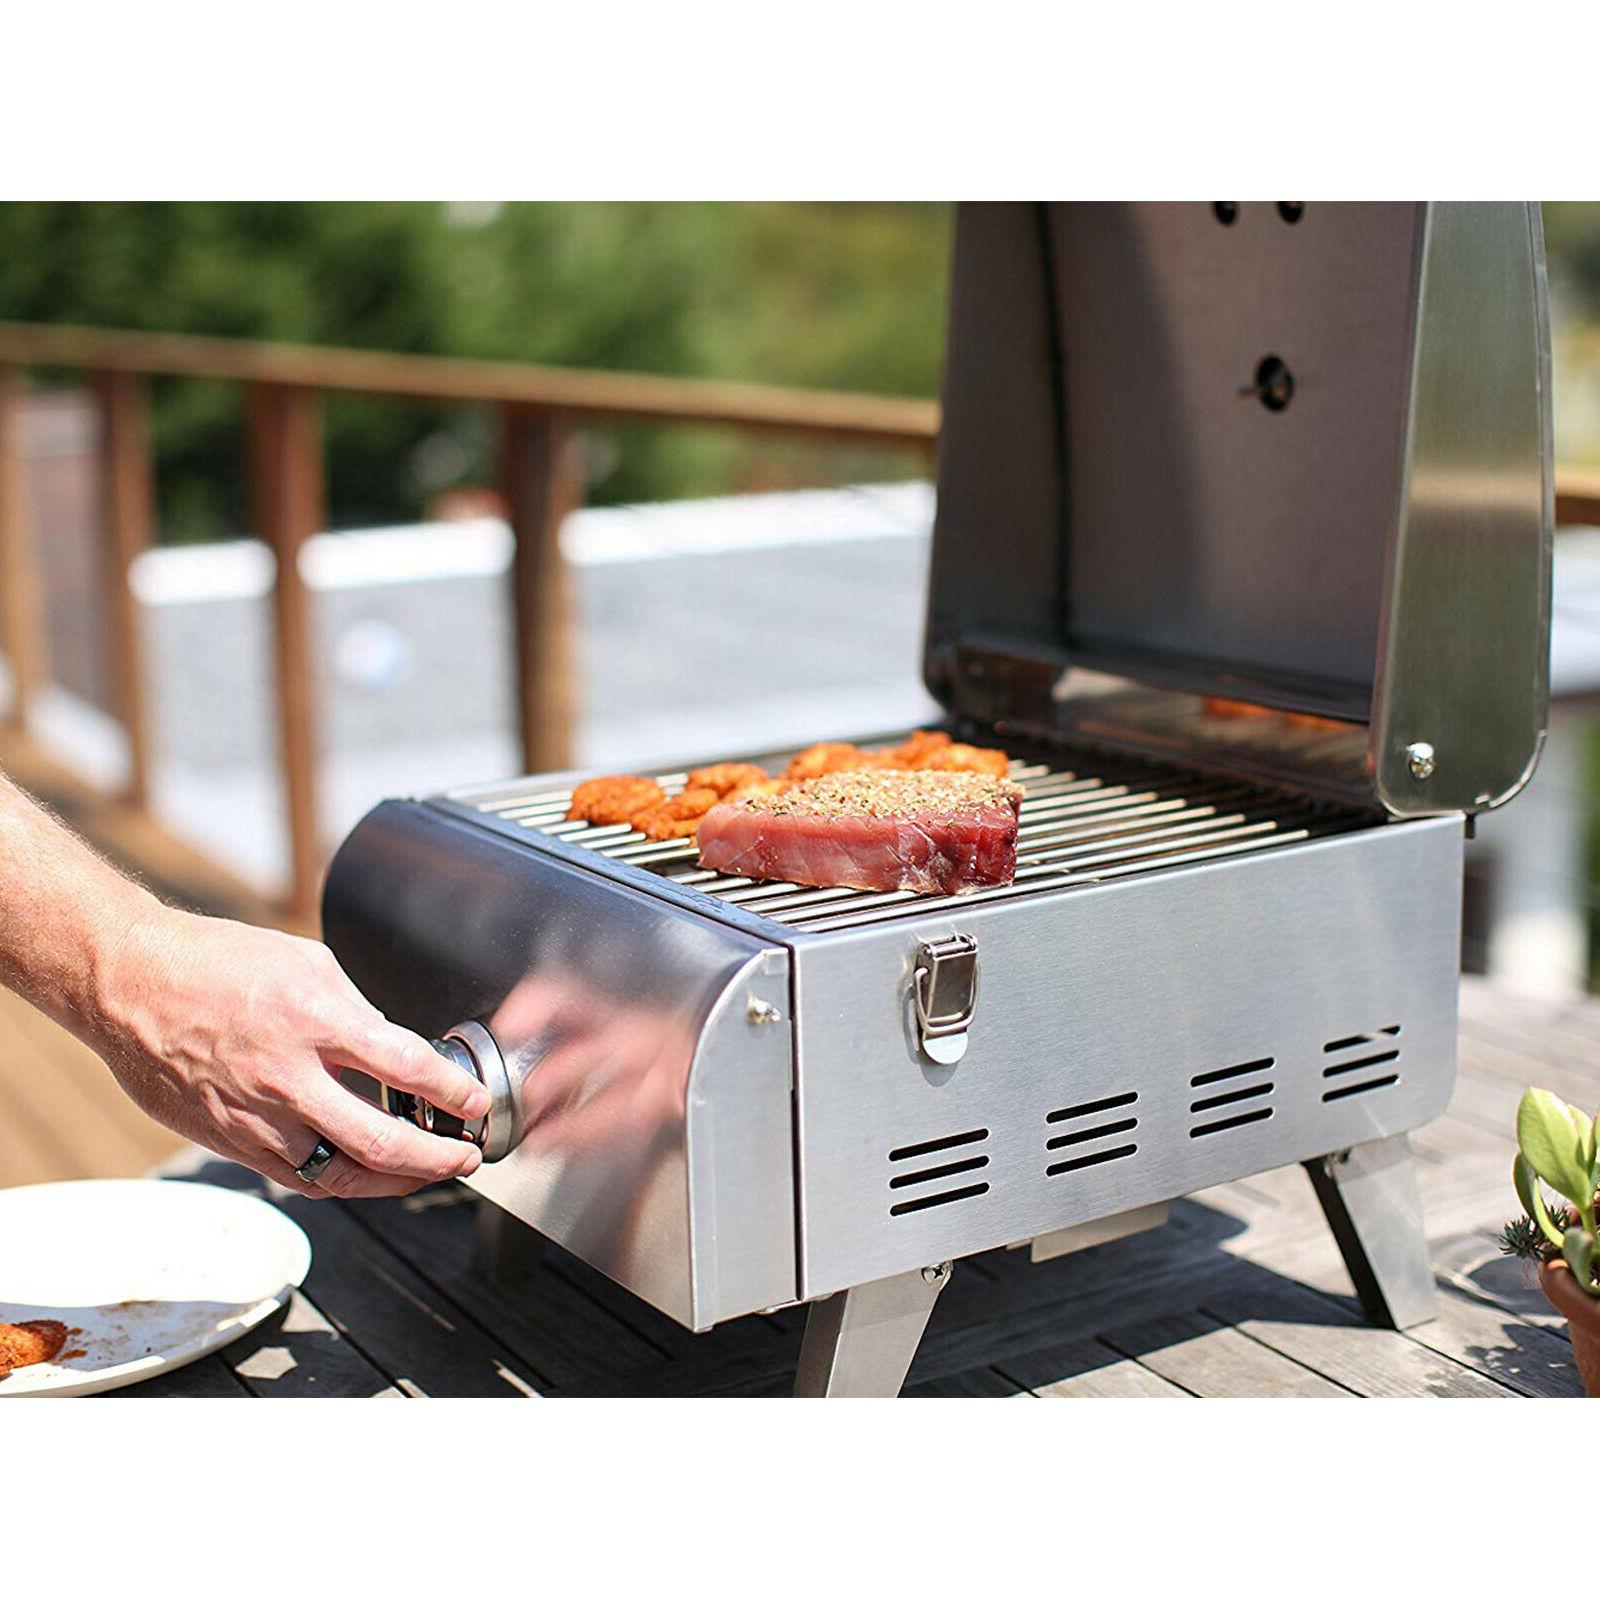 Portable Propane Gas Grill Stainless Steel Outdoor